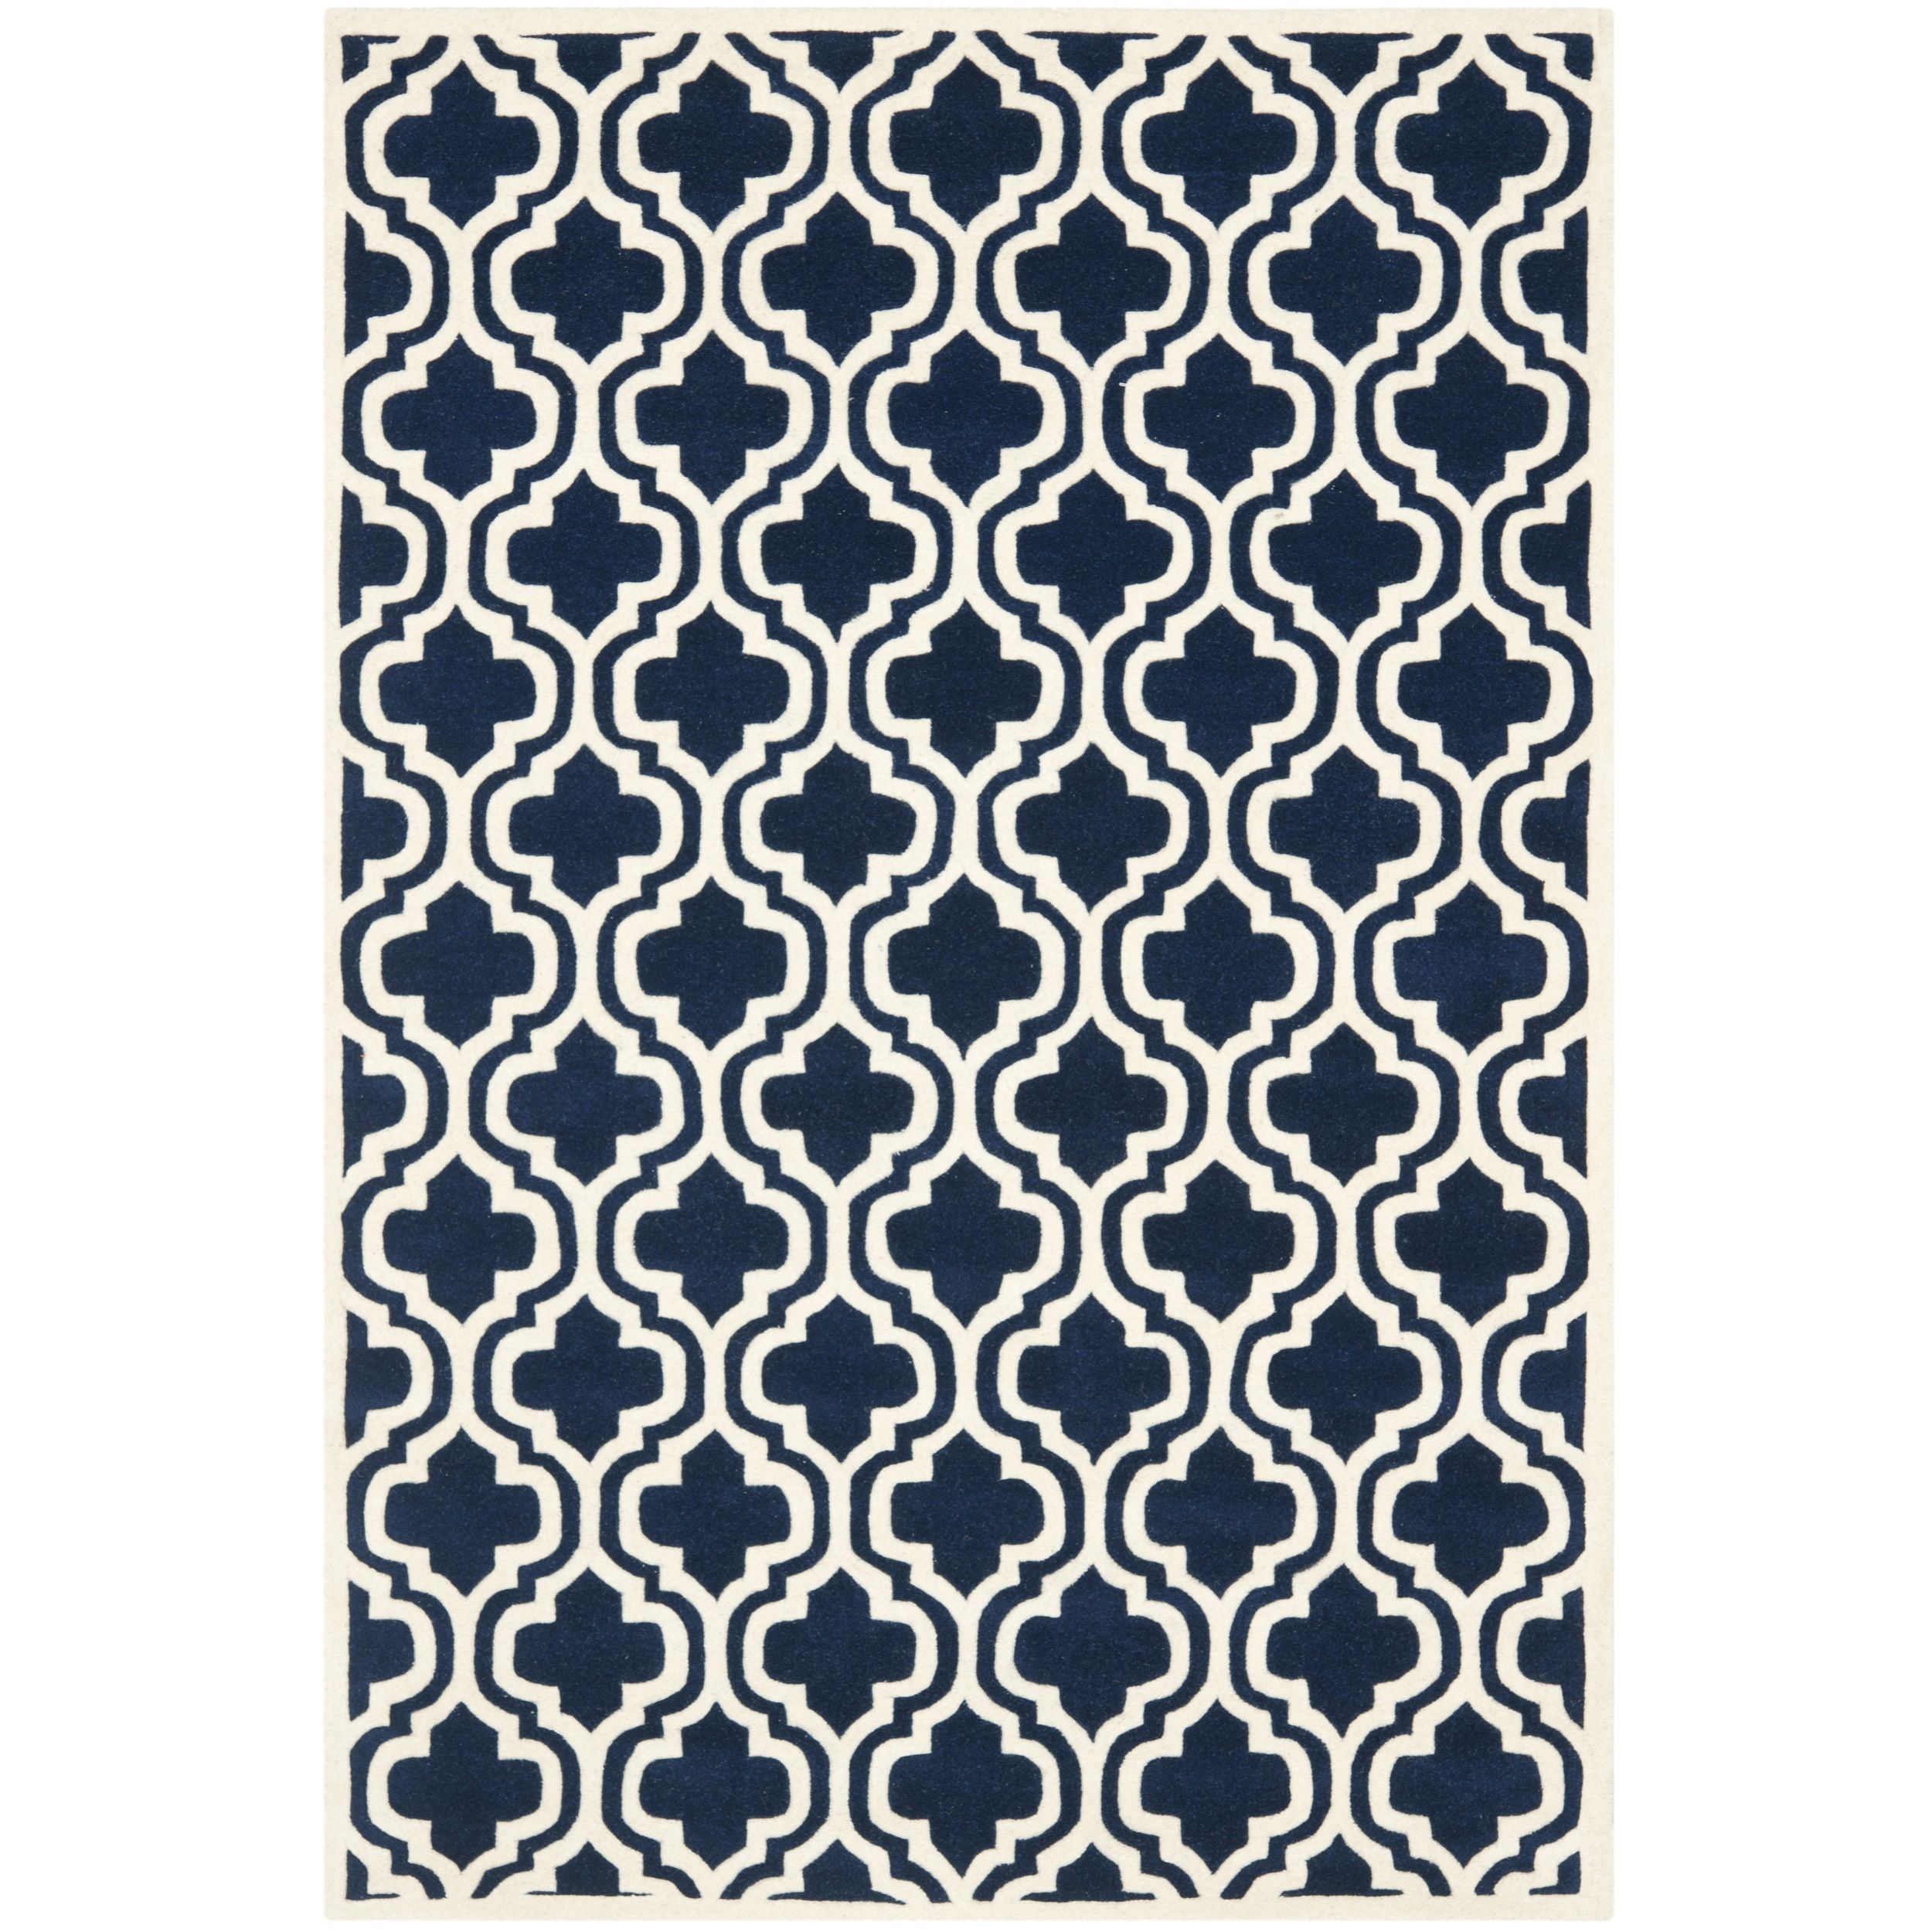 A Contemporary Design And Dense Thick Pile Highlight This Handmade Rug Inspired By Moroccan Patterns